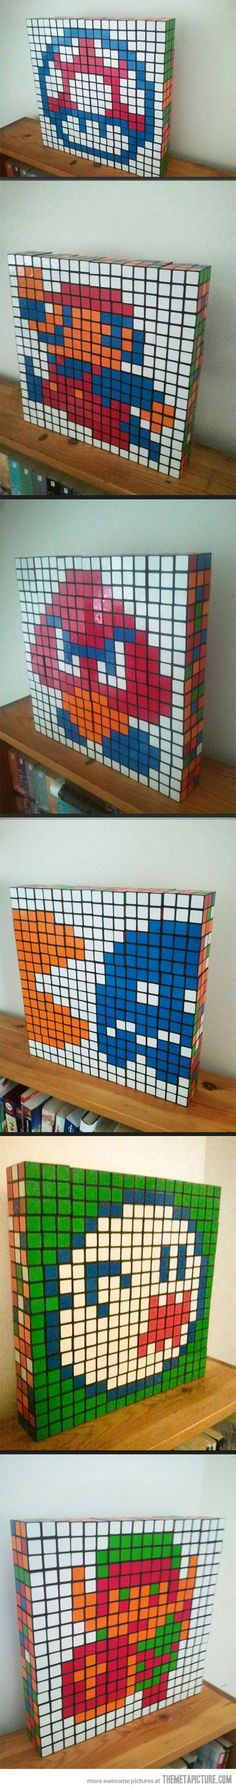 Rubiks Cubes - Link! He come to town! Come to save....the princess Zeldaaa!